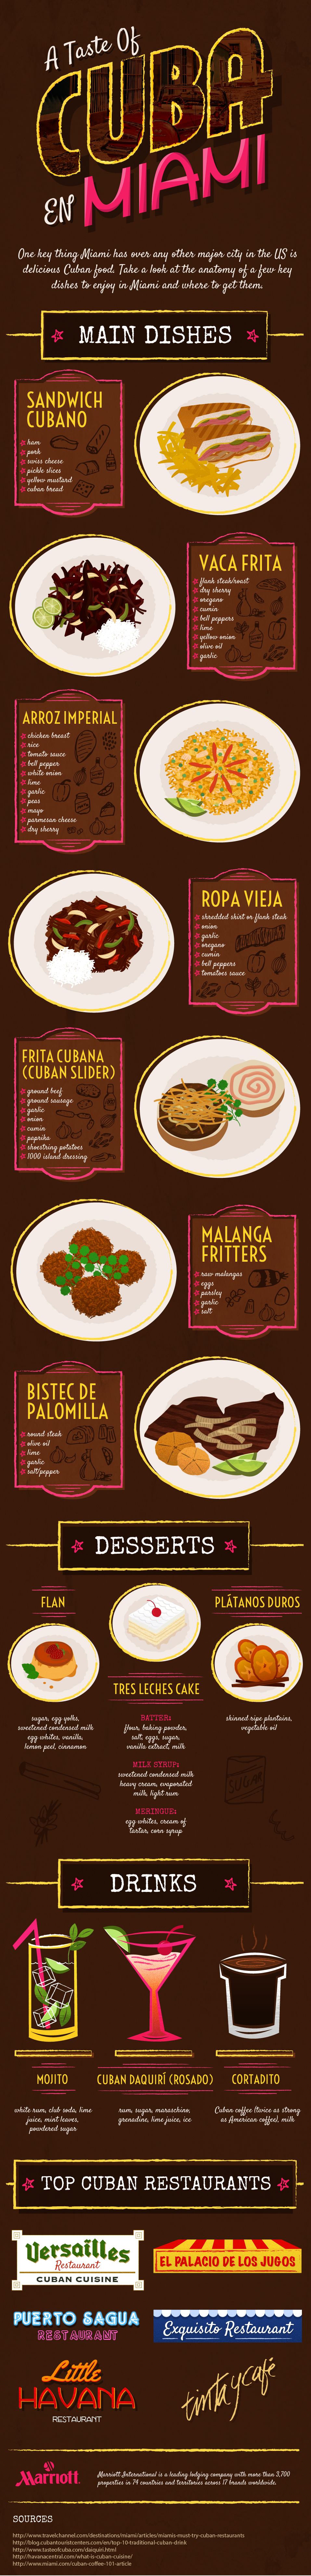 A Taste Of Cuba En Miami | Best Food Infographics